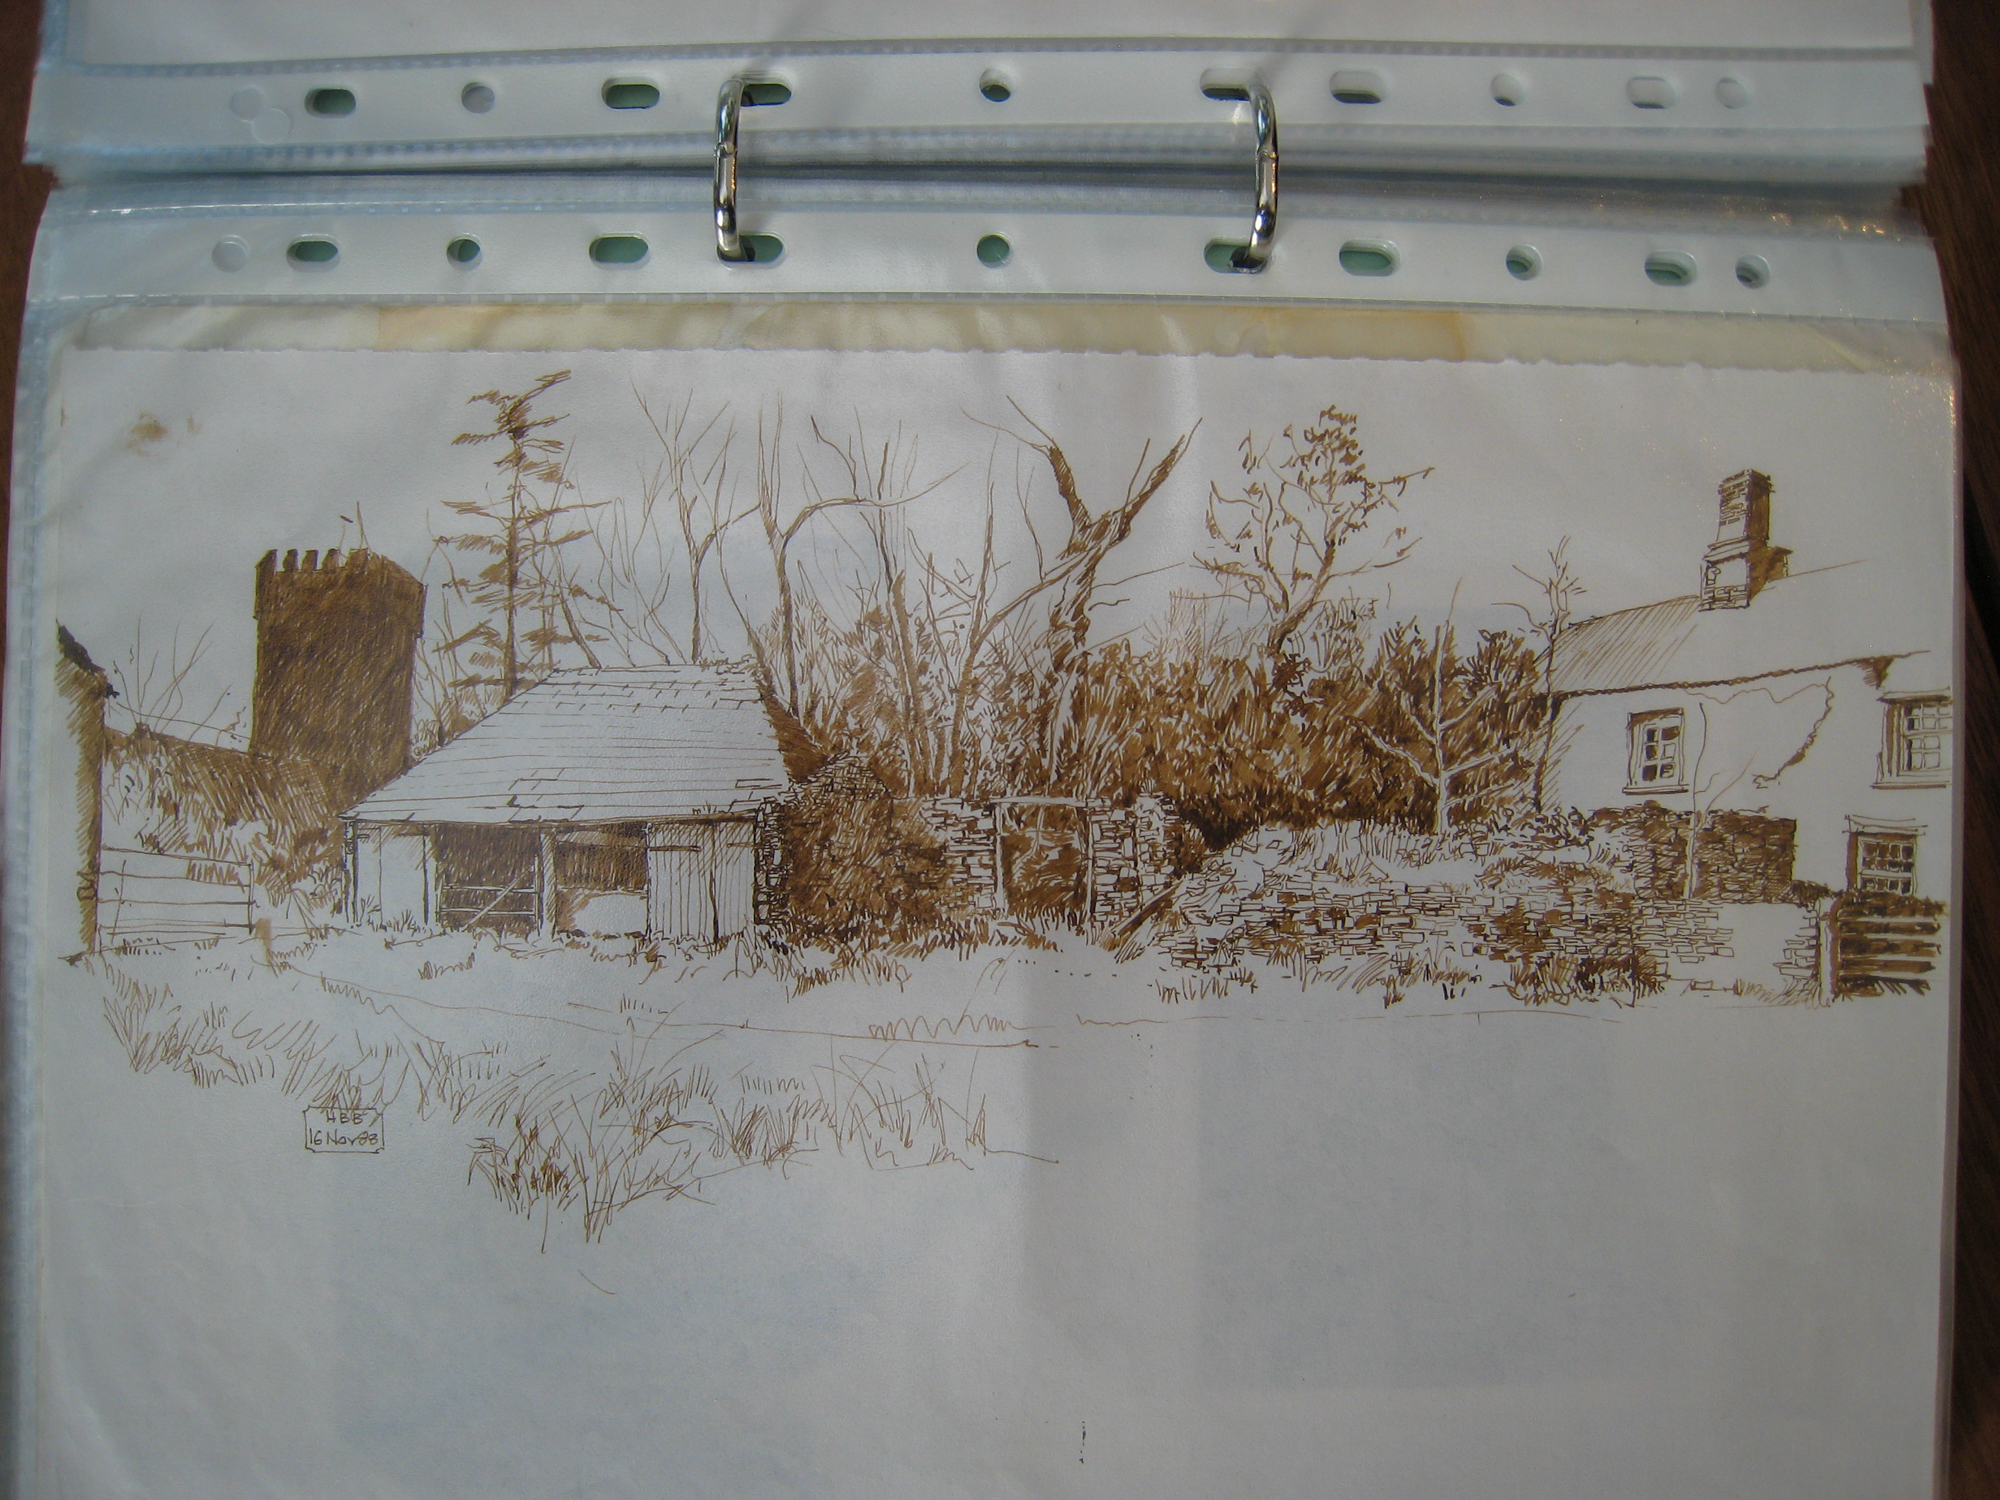 Homeliving to St German's church, drawing, 1988